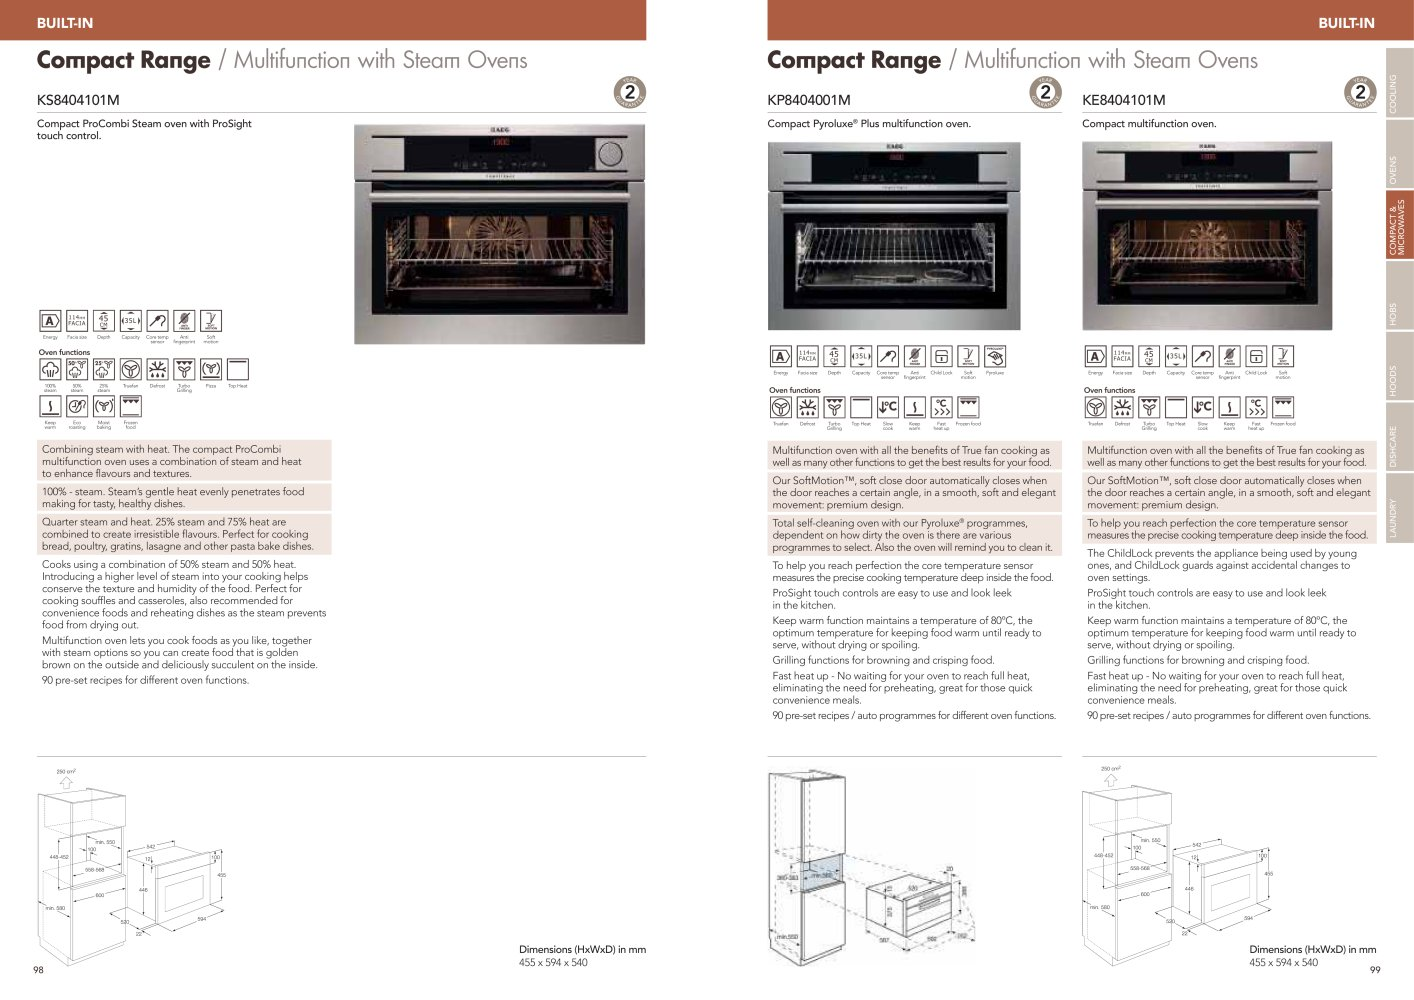 Kitchen Retail Edition 4 2012 - AEG - Page n° 50 - PDF Catalogues